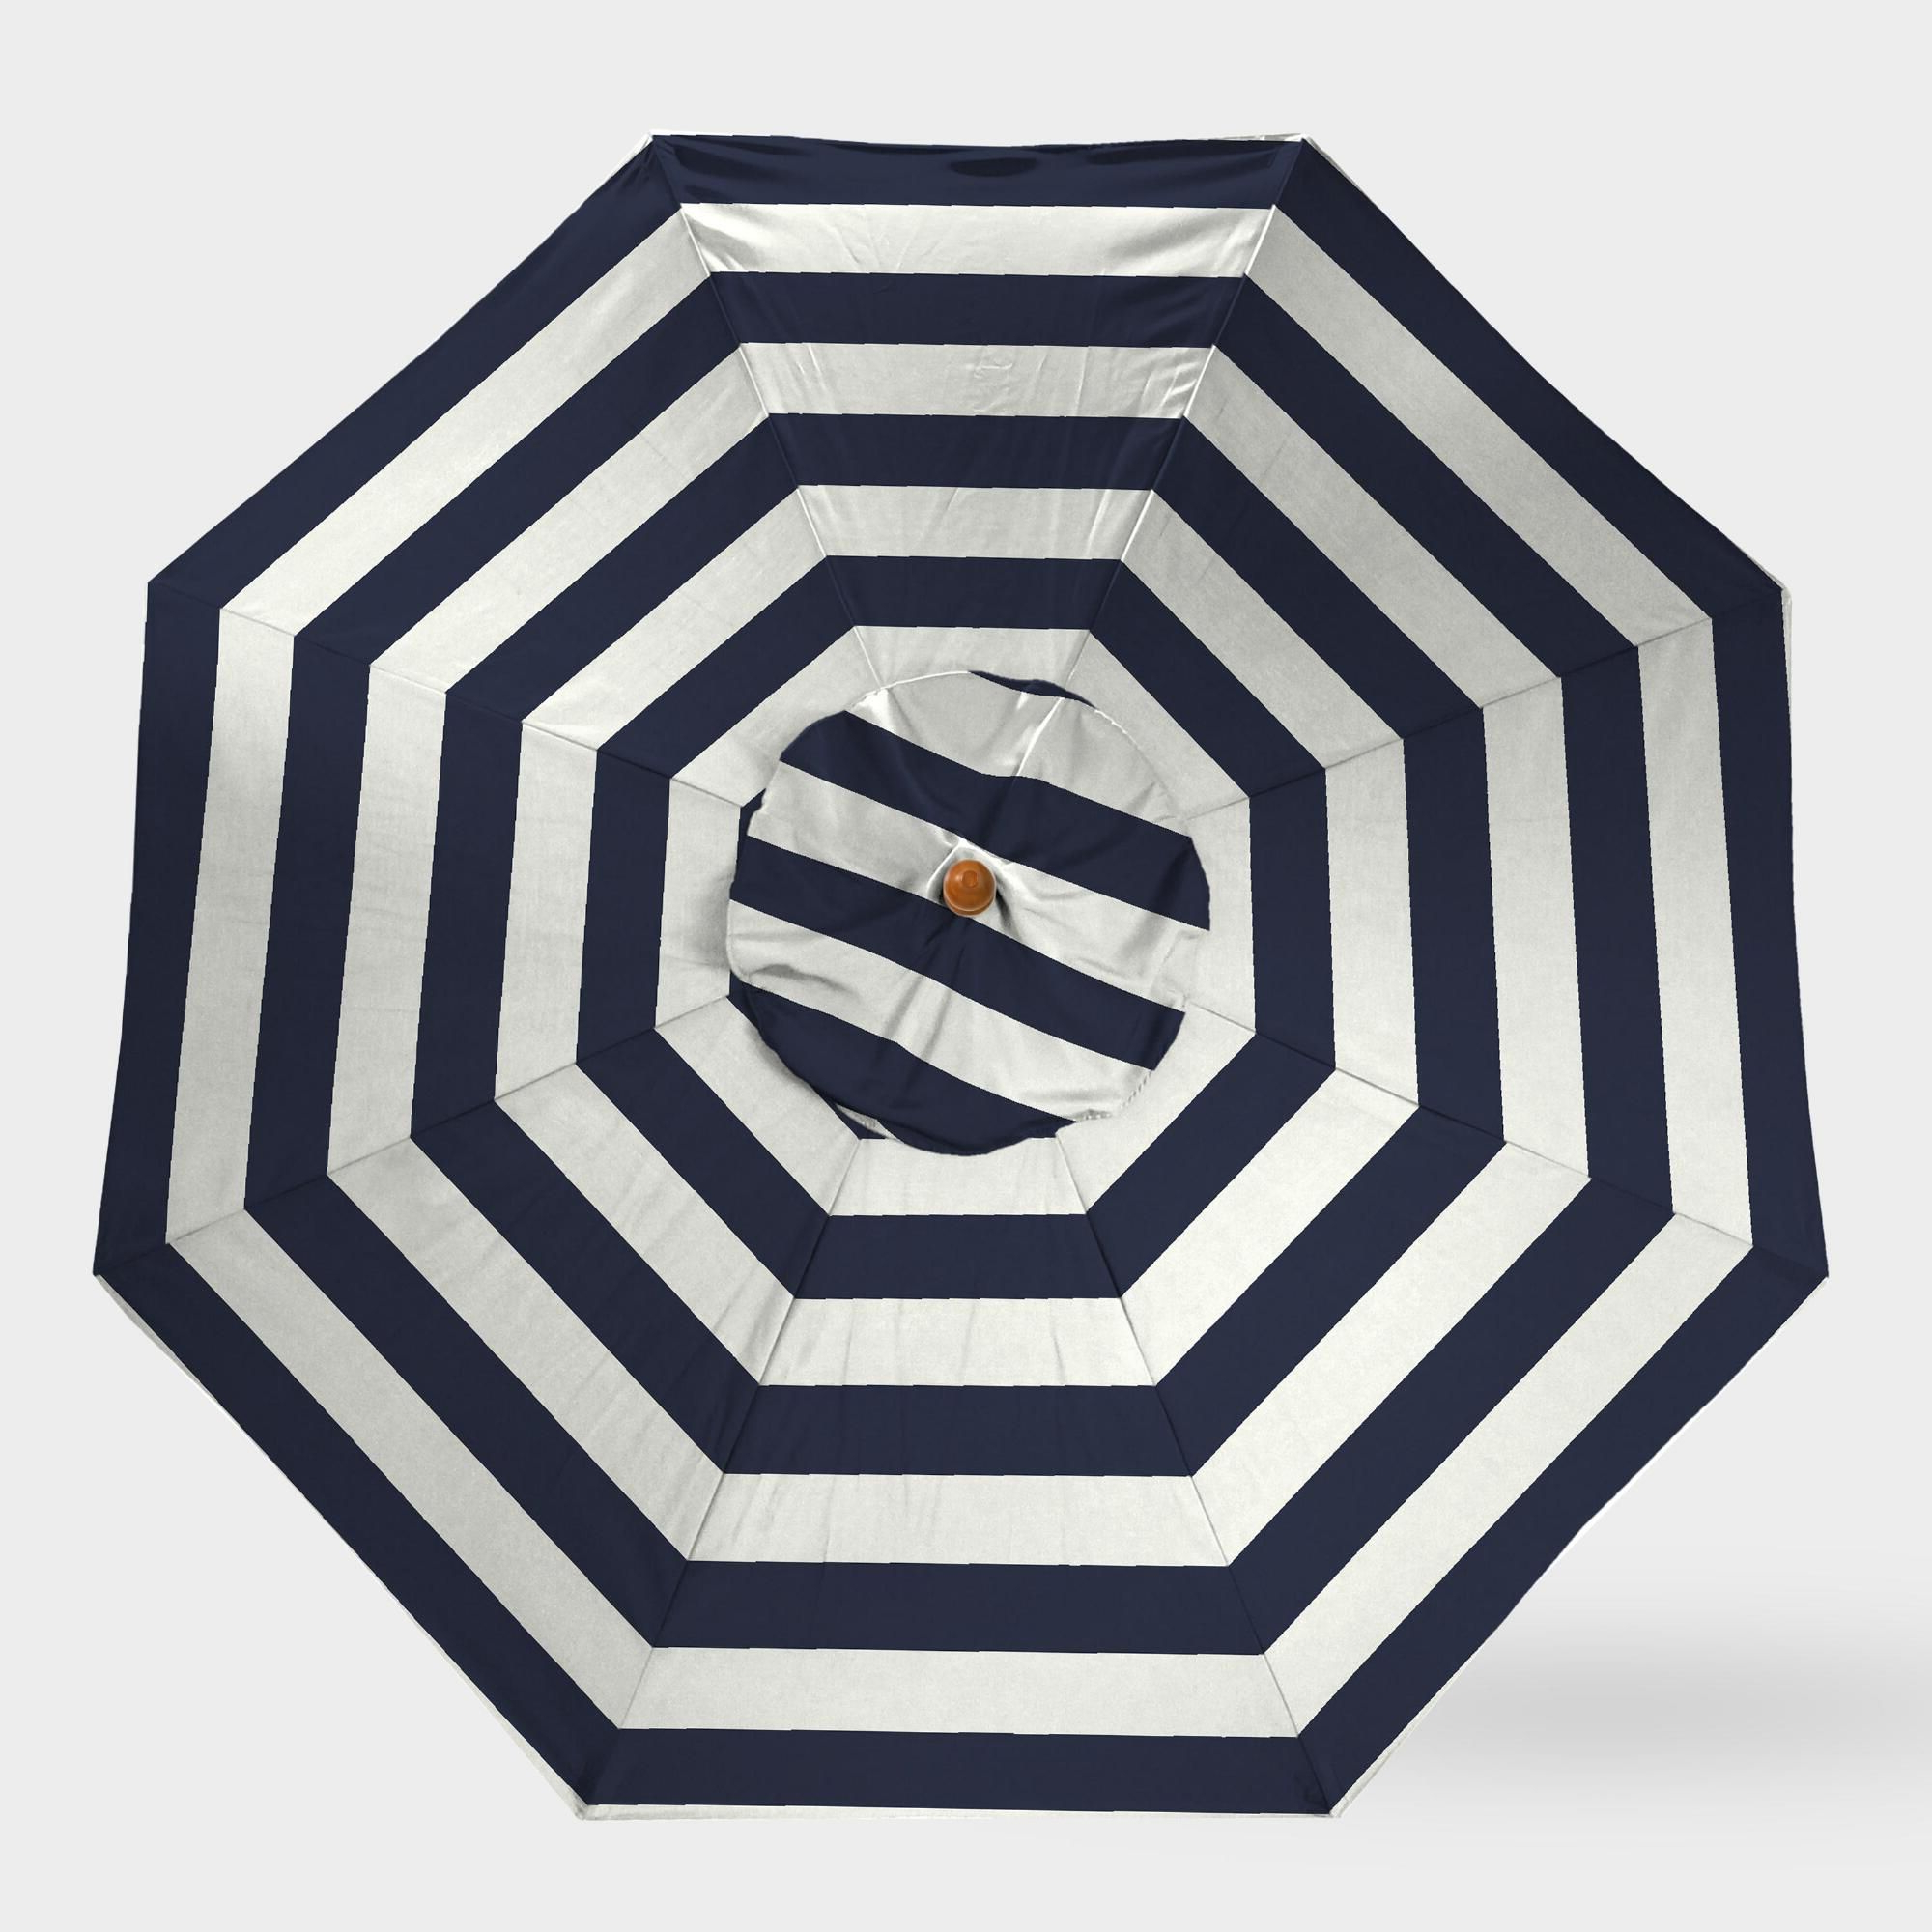 Widely Used Peacoat Blue Stripe 5 Ft Replacement Umbrella Canopyworld Market Throughout Darwen Tiltable Patio Stripe Market Umbrellas (View 19 of 20)